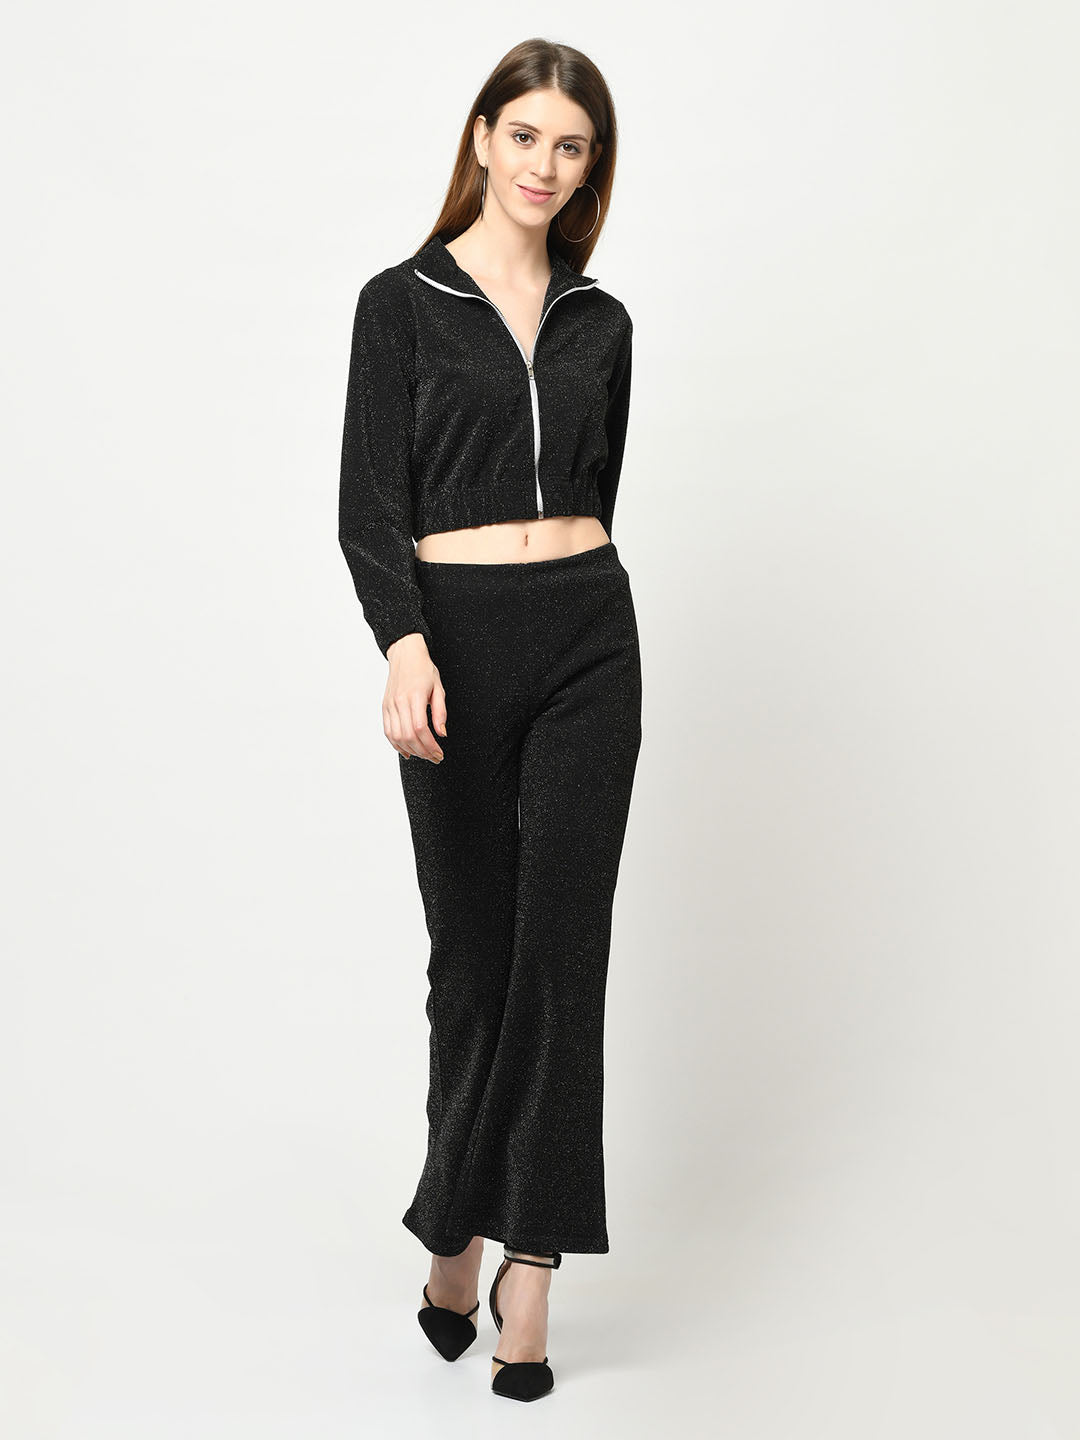 Black Glitterati Zip-Up Jacket With Flare Party Pant - Avsoy